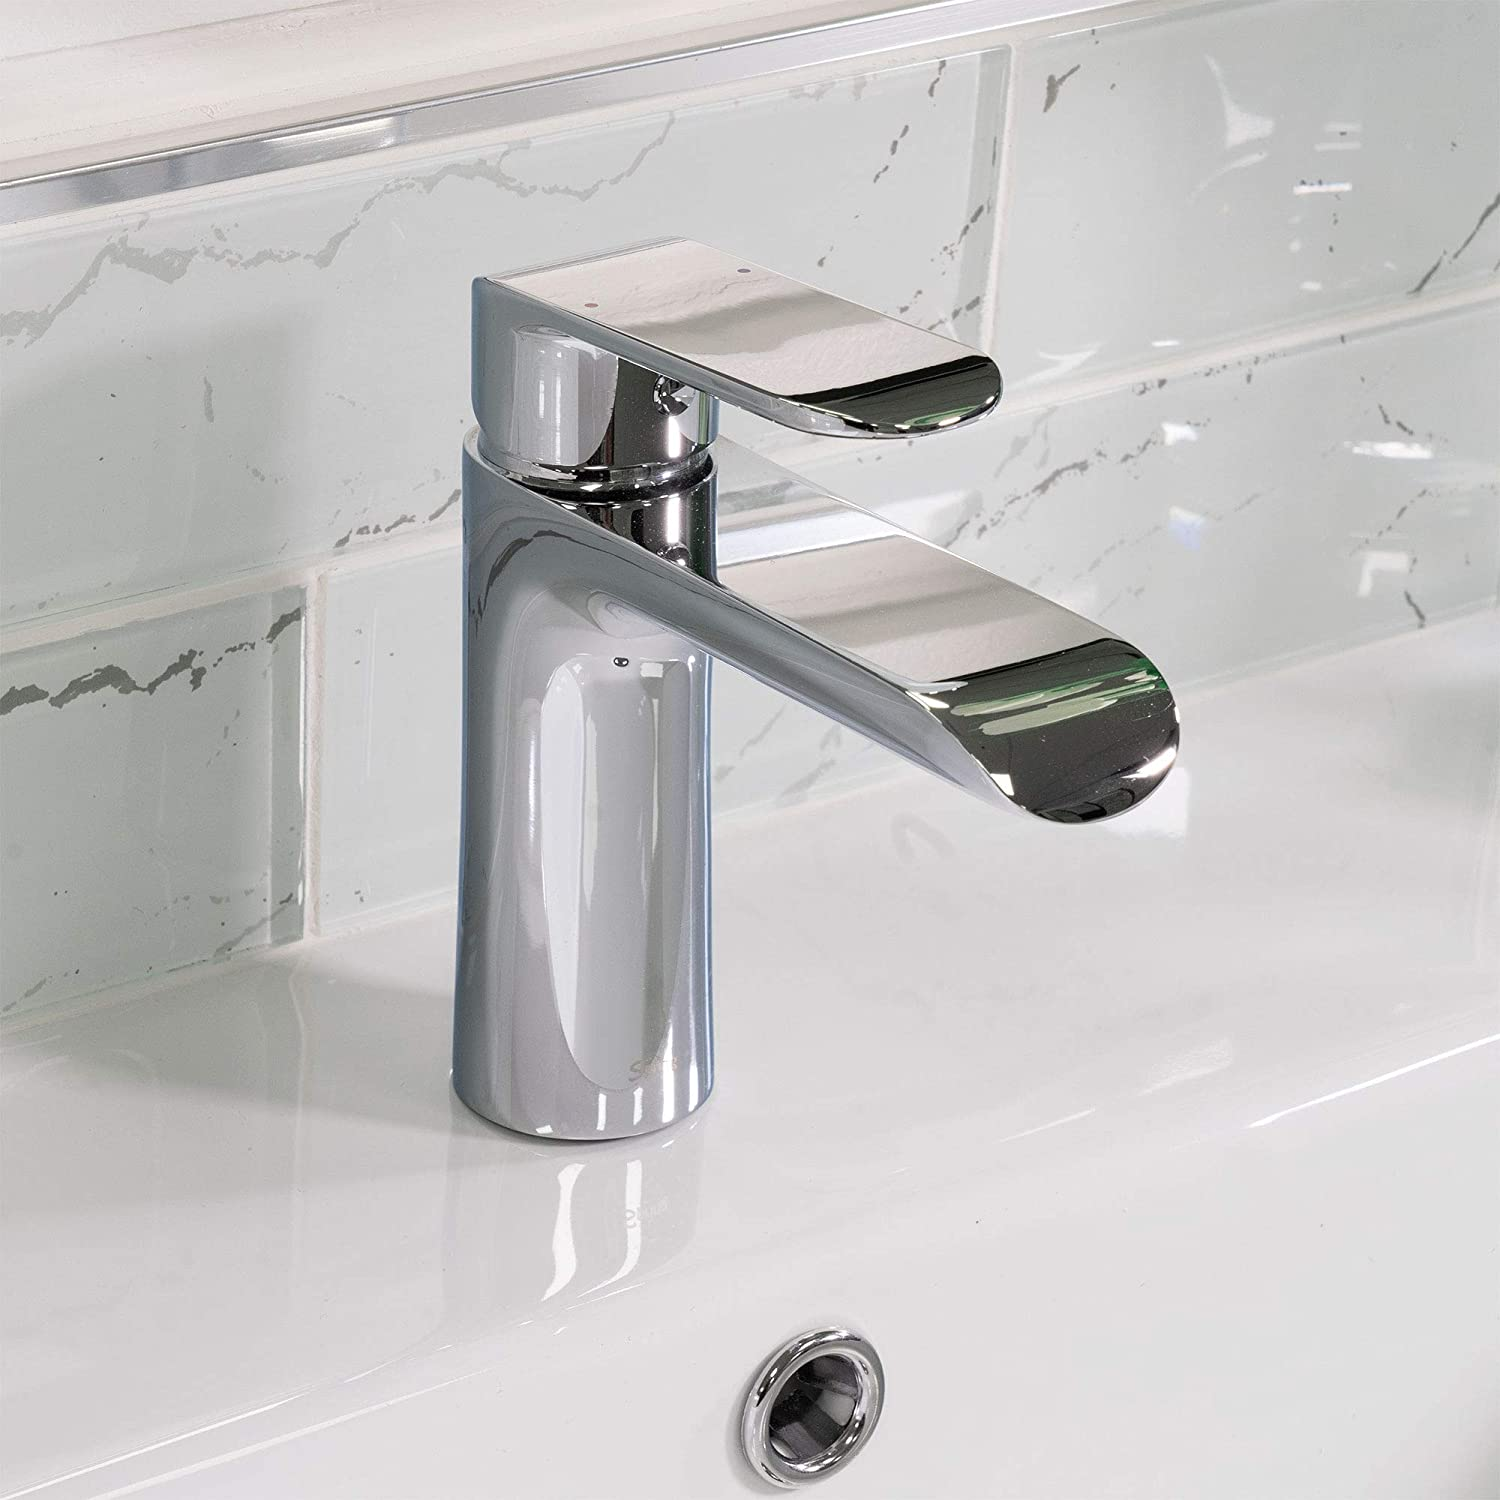 Spring Chrome Bathroom Sink Faucet Single Handle Brass Material Faucet 1 Hole Easy Installation Pop Up Drain Assembly Included Wdg16431c By Koozzo Amazon Com